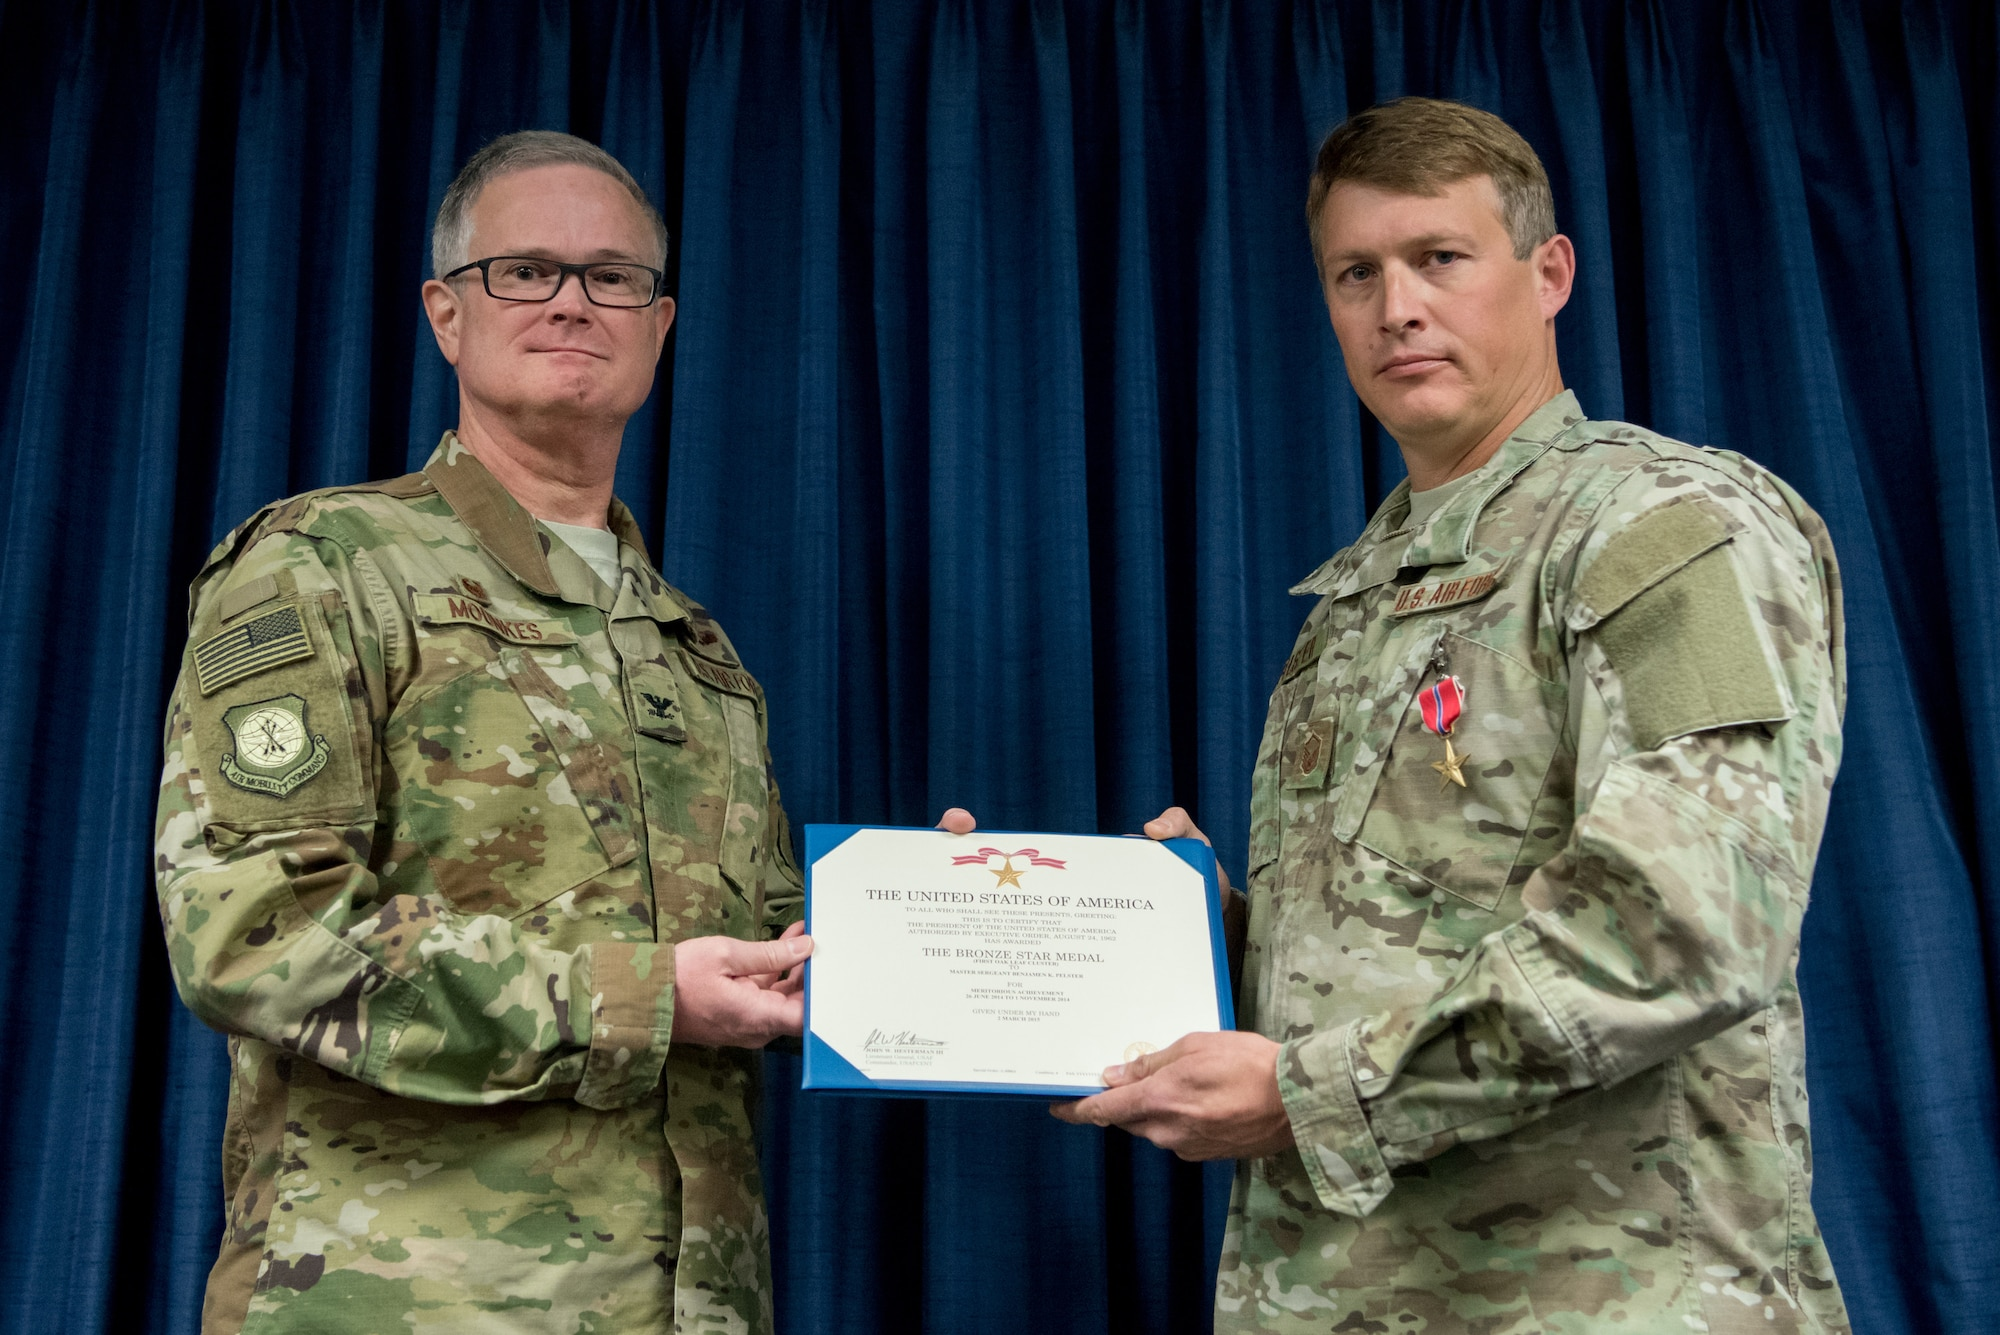 Master Sgt. Benjamen K. Pelster (right), a combat controller for the 123rd Special Tactics Squadron, receives the Bronze Star Medal from Col. David Mounkes, commander of the 123rd Airlift Wing, during a ceremony at the Kentucky Air National Guard Base in Louisville, Ky., Nov. 17, 2018. Pelster was instrumental in the execution of nine missions across five countries involving seven landing zones, nine forward area refueling point surveys and one drop zone certification in 2014. His efforts led to the establishment and expansion of critical air infrastructure in support of Operation Inherent Resolve and across the United States Air Forces Central Command's area of responsibility. (U.S. Air National Guard photo by Staff Sgt. Joshua Horton)